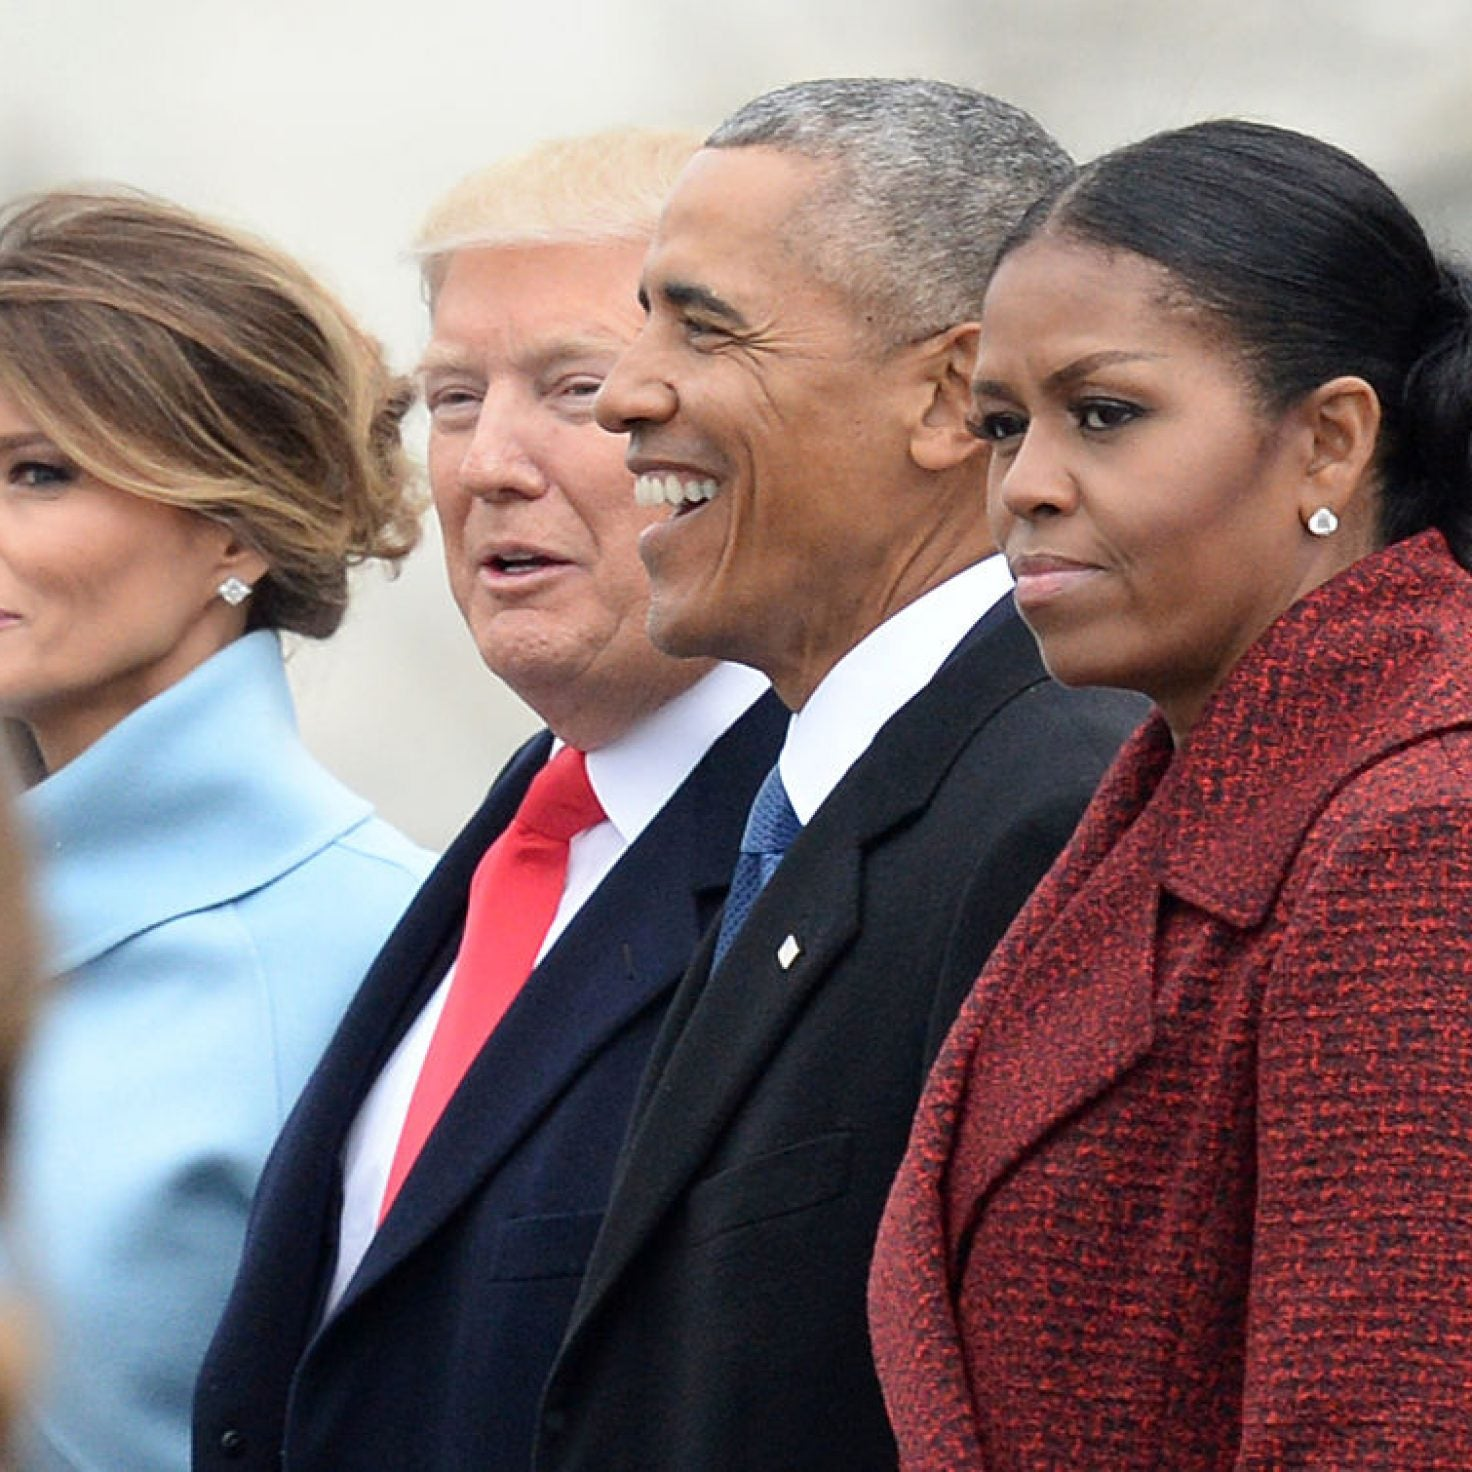 Obama, Trump Tie For U.S. Citizens' Most Admired Man